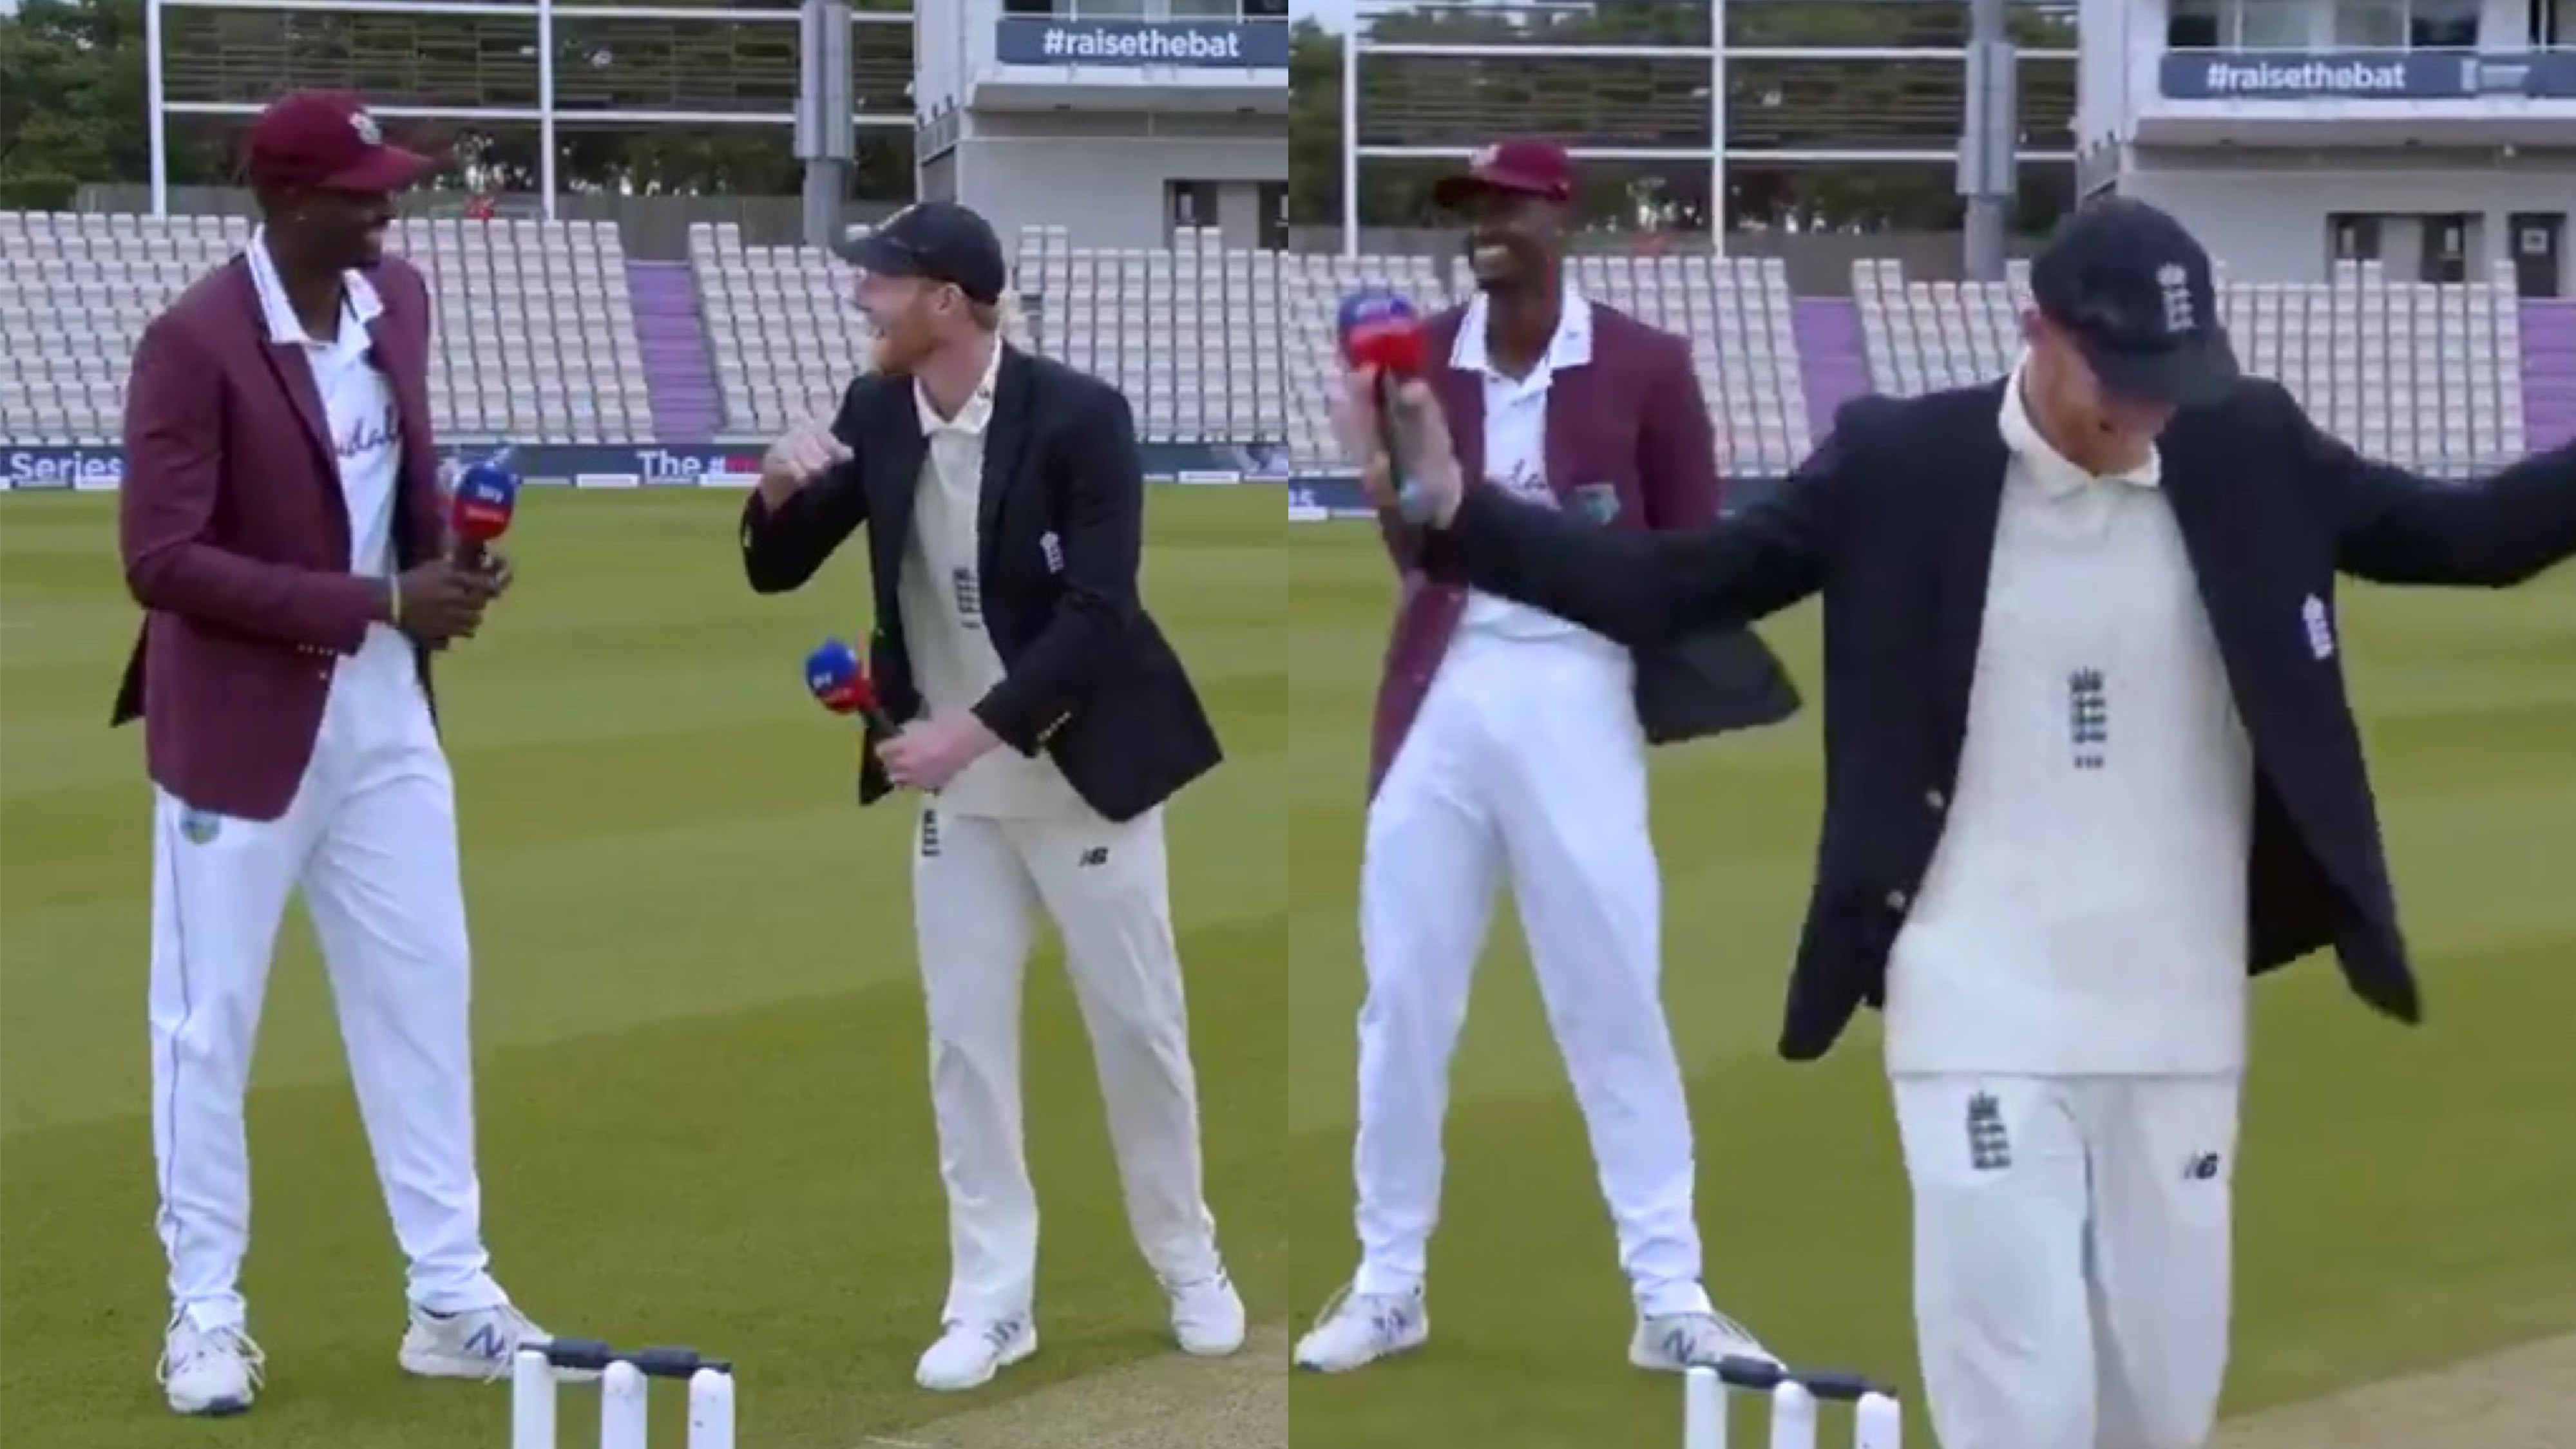 ENG v WI 2020: WATCH -